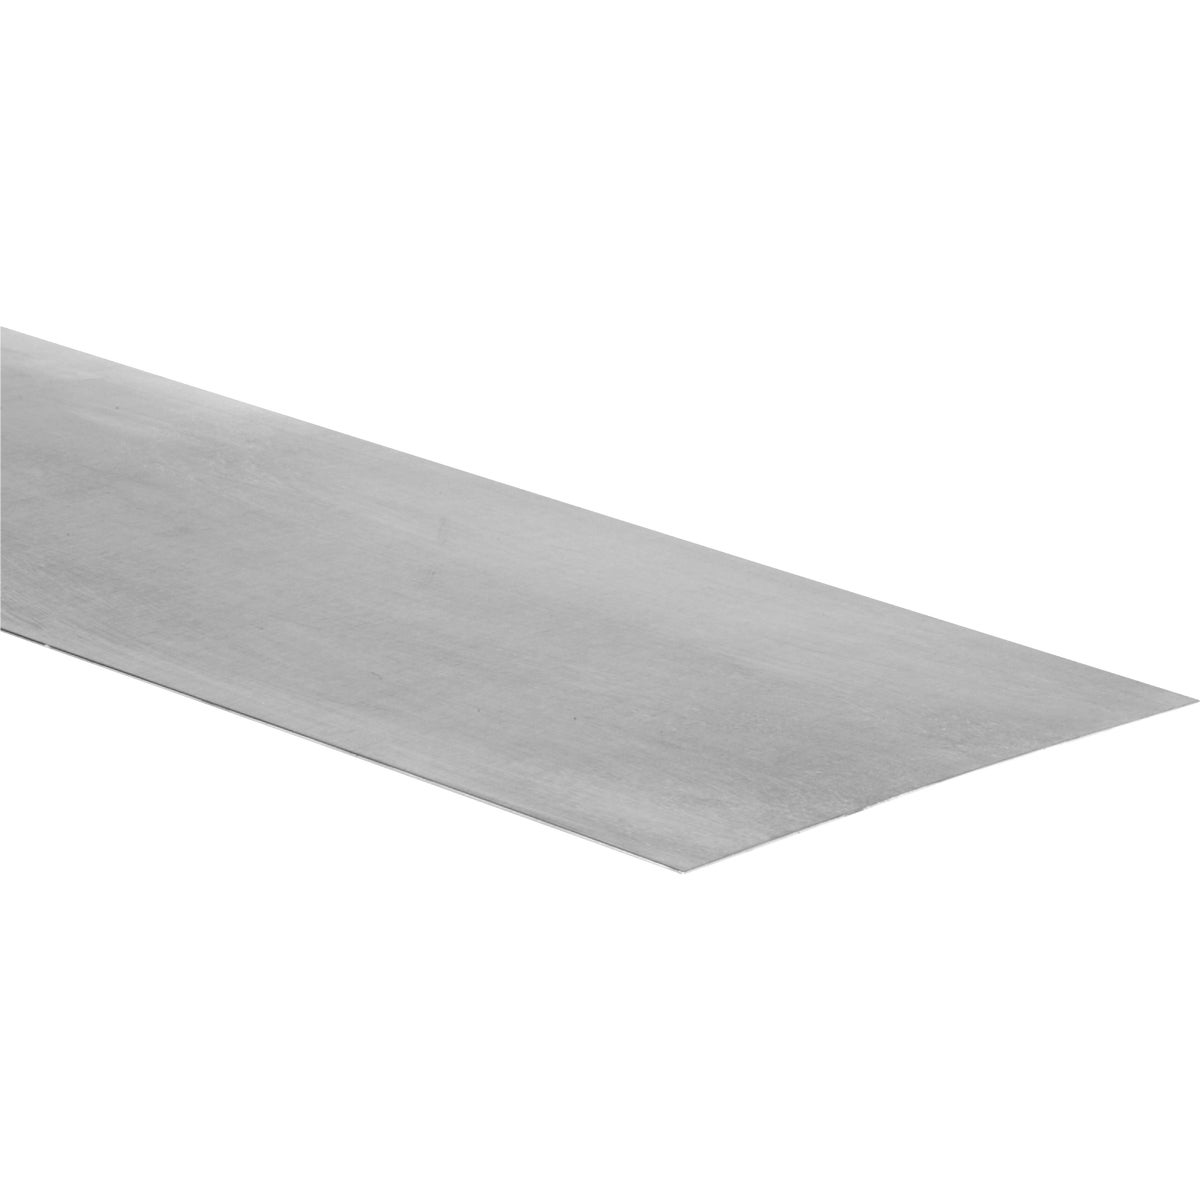 24X24 26GA STEEL SHEET - N215772 by National Mfg Co